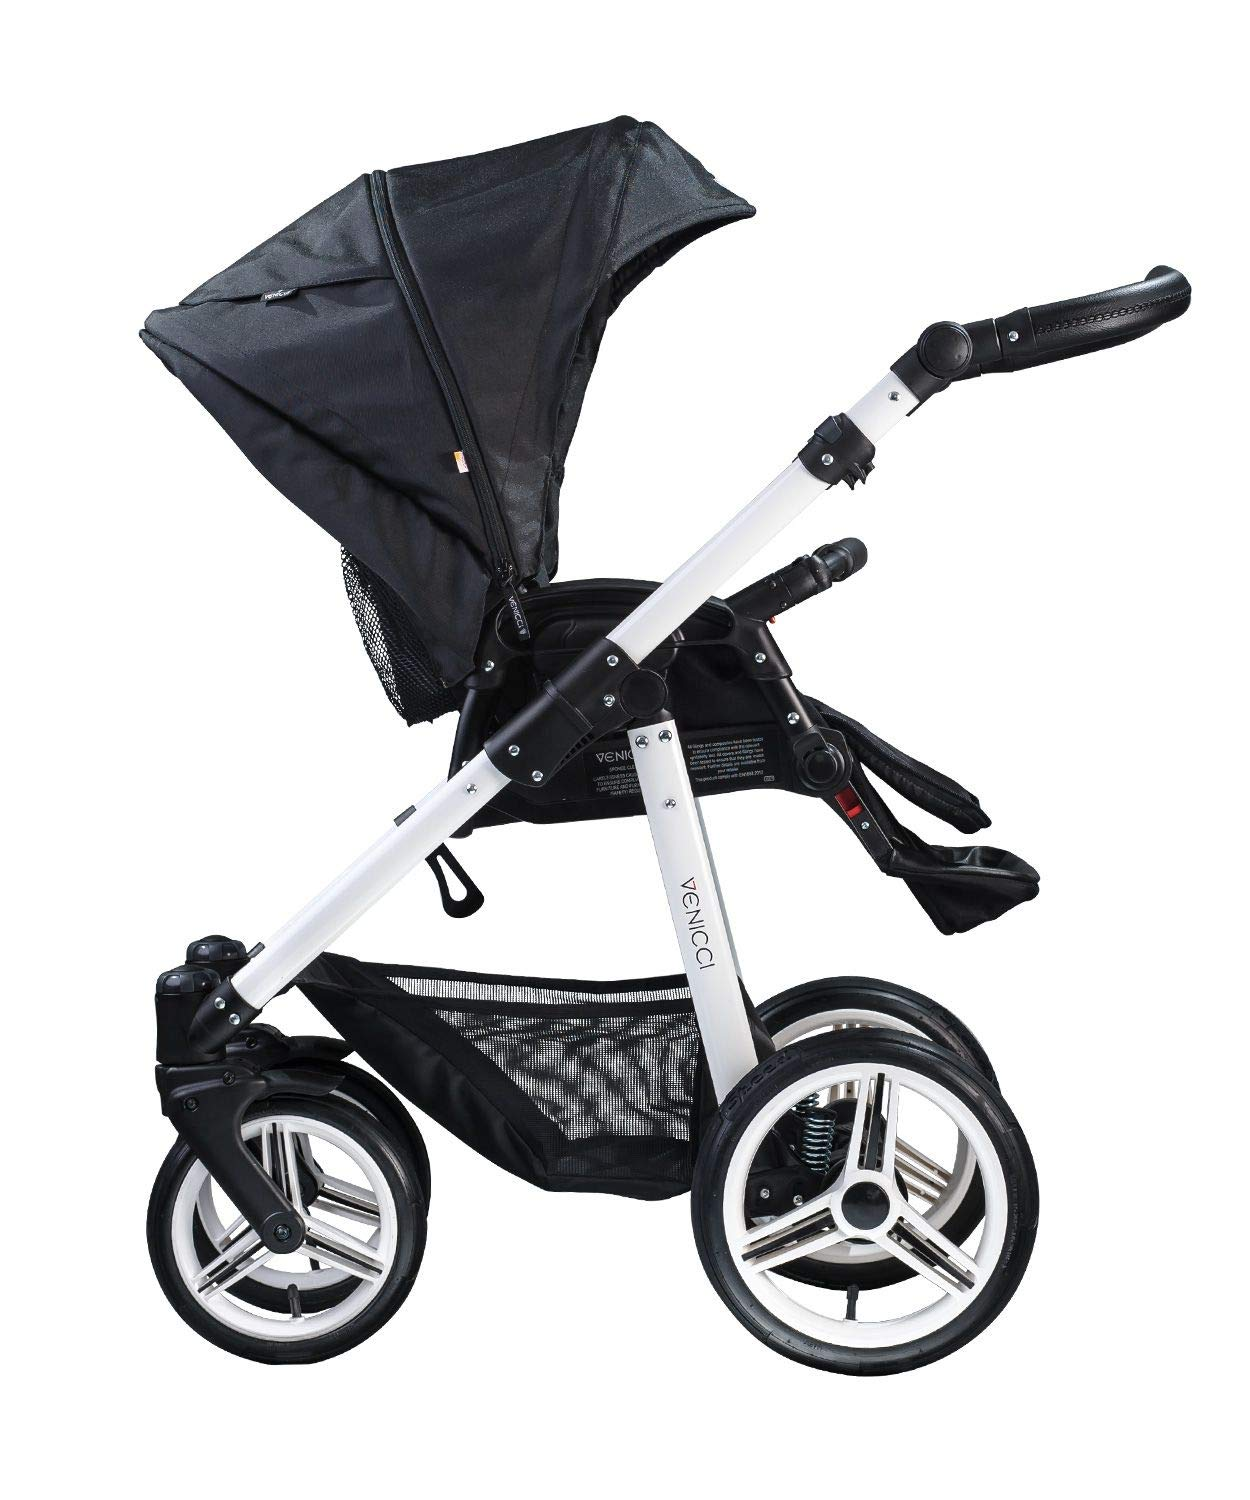 Venicci Soft Vento 3-in-1 Travel System - Black/White - with Carrycot + Car Seat + Changing Bag + Footmuff + Raincover + Mosquito Net + 5-Point Harness and UV 50+ Fabric + Car Seat Adapters  3 in 1 Travel System with included Group 0+ Car Seat Suitable for your baby from birth until 36 months 5-point harness to enhance the safety of your child 3